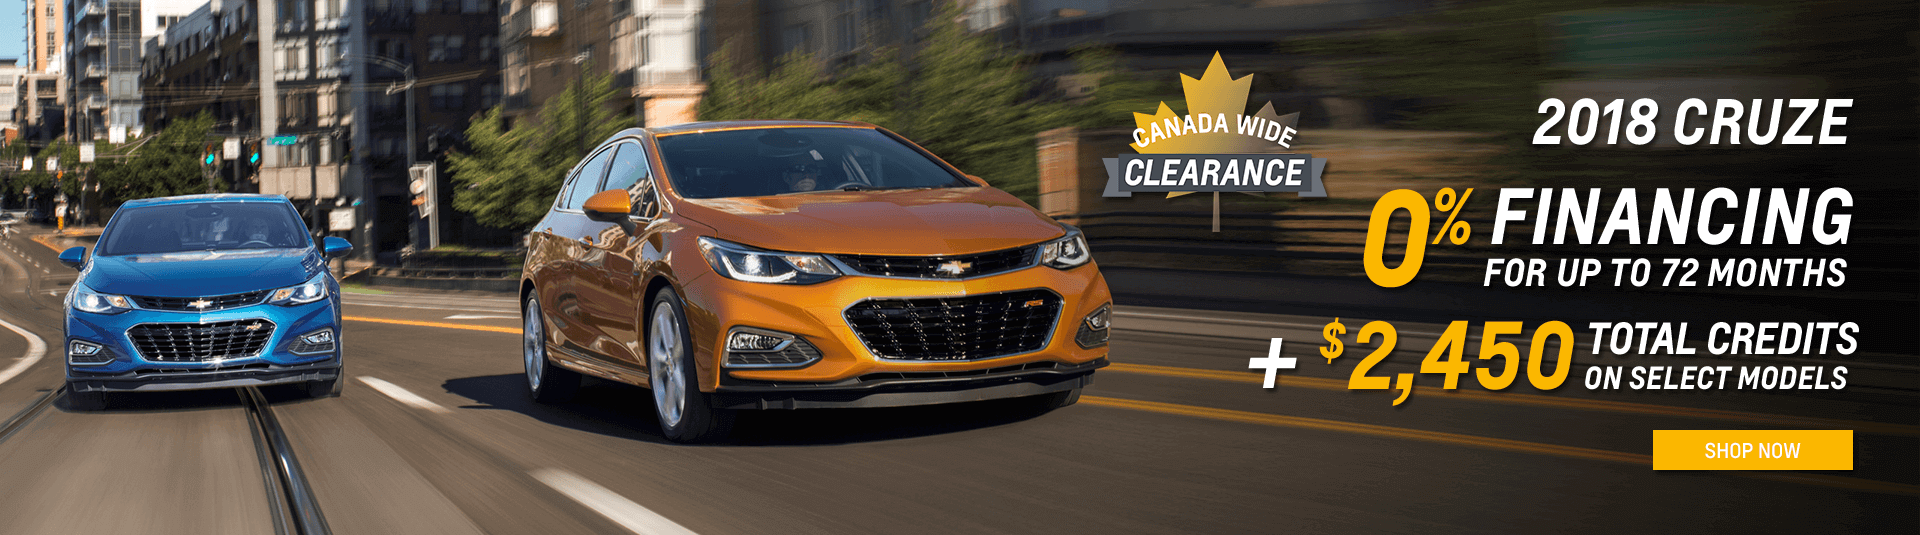 Chevrolet Cruze Canada Wide Clearance in Toronto